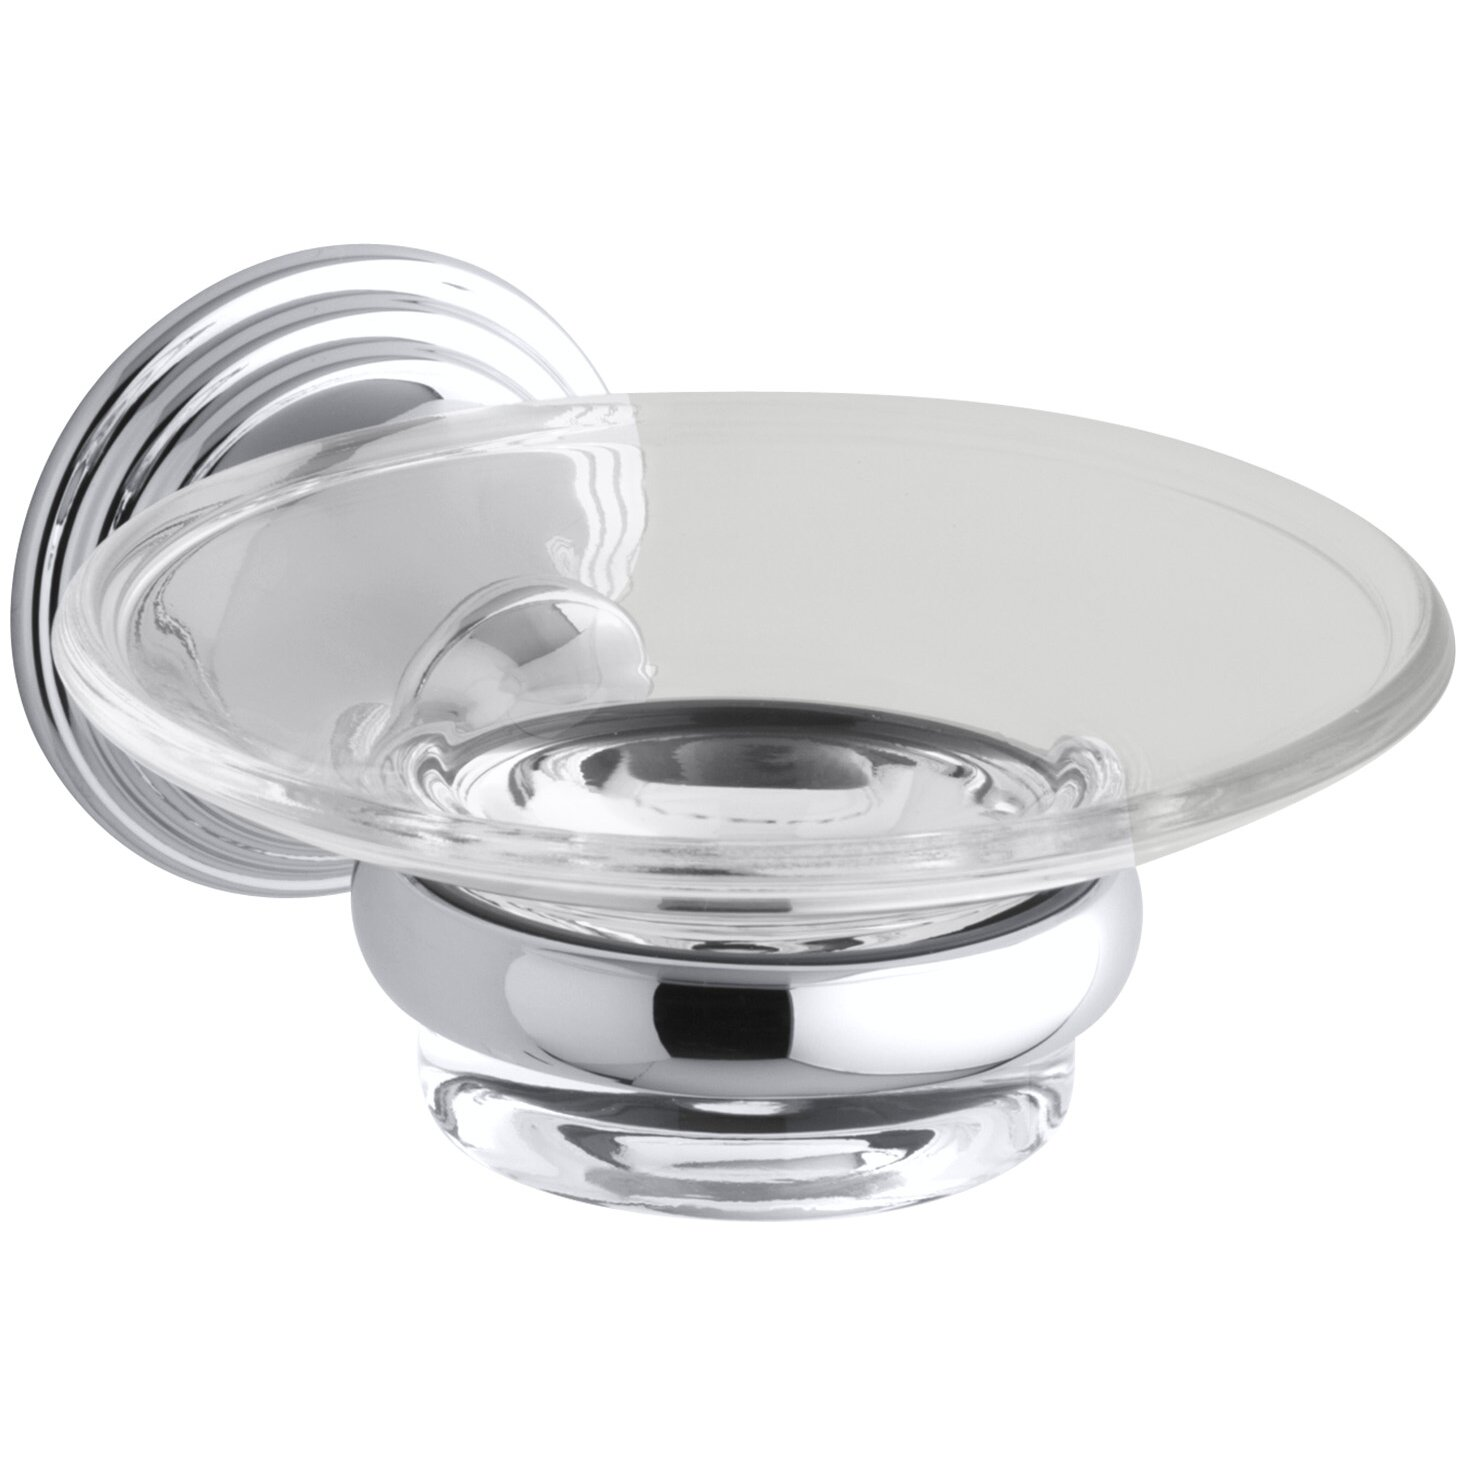 Kohler devonshire soap dish reviews wayfair - Kohler devonshire reviews ...